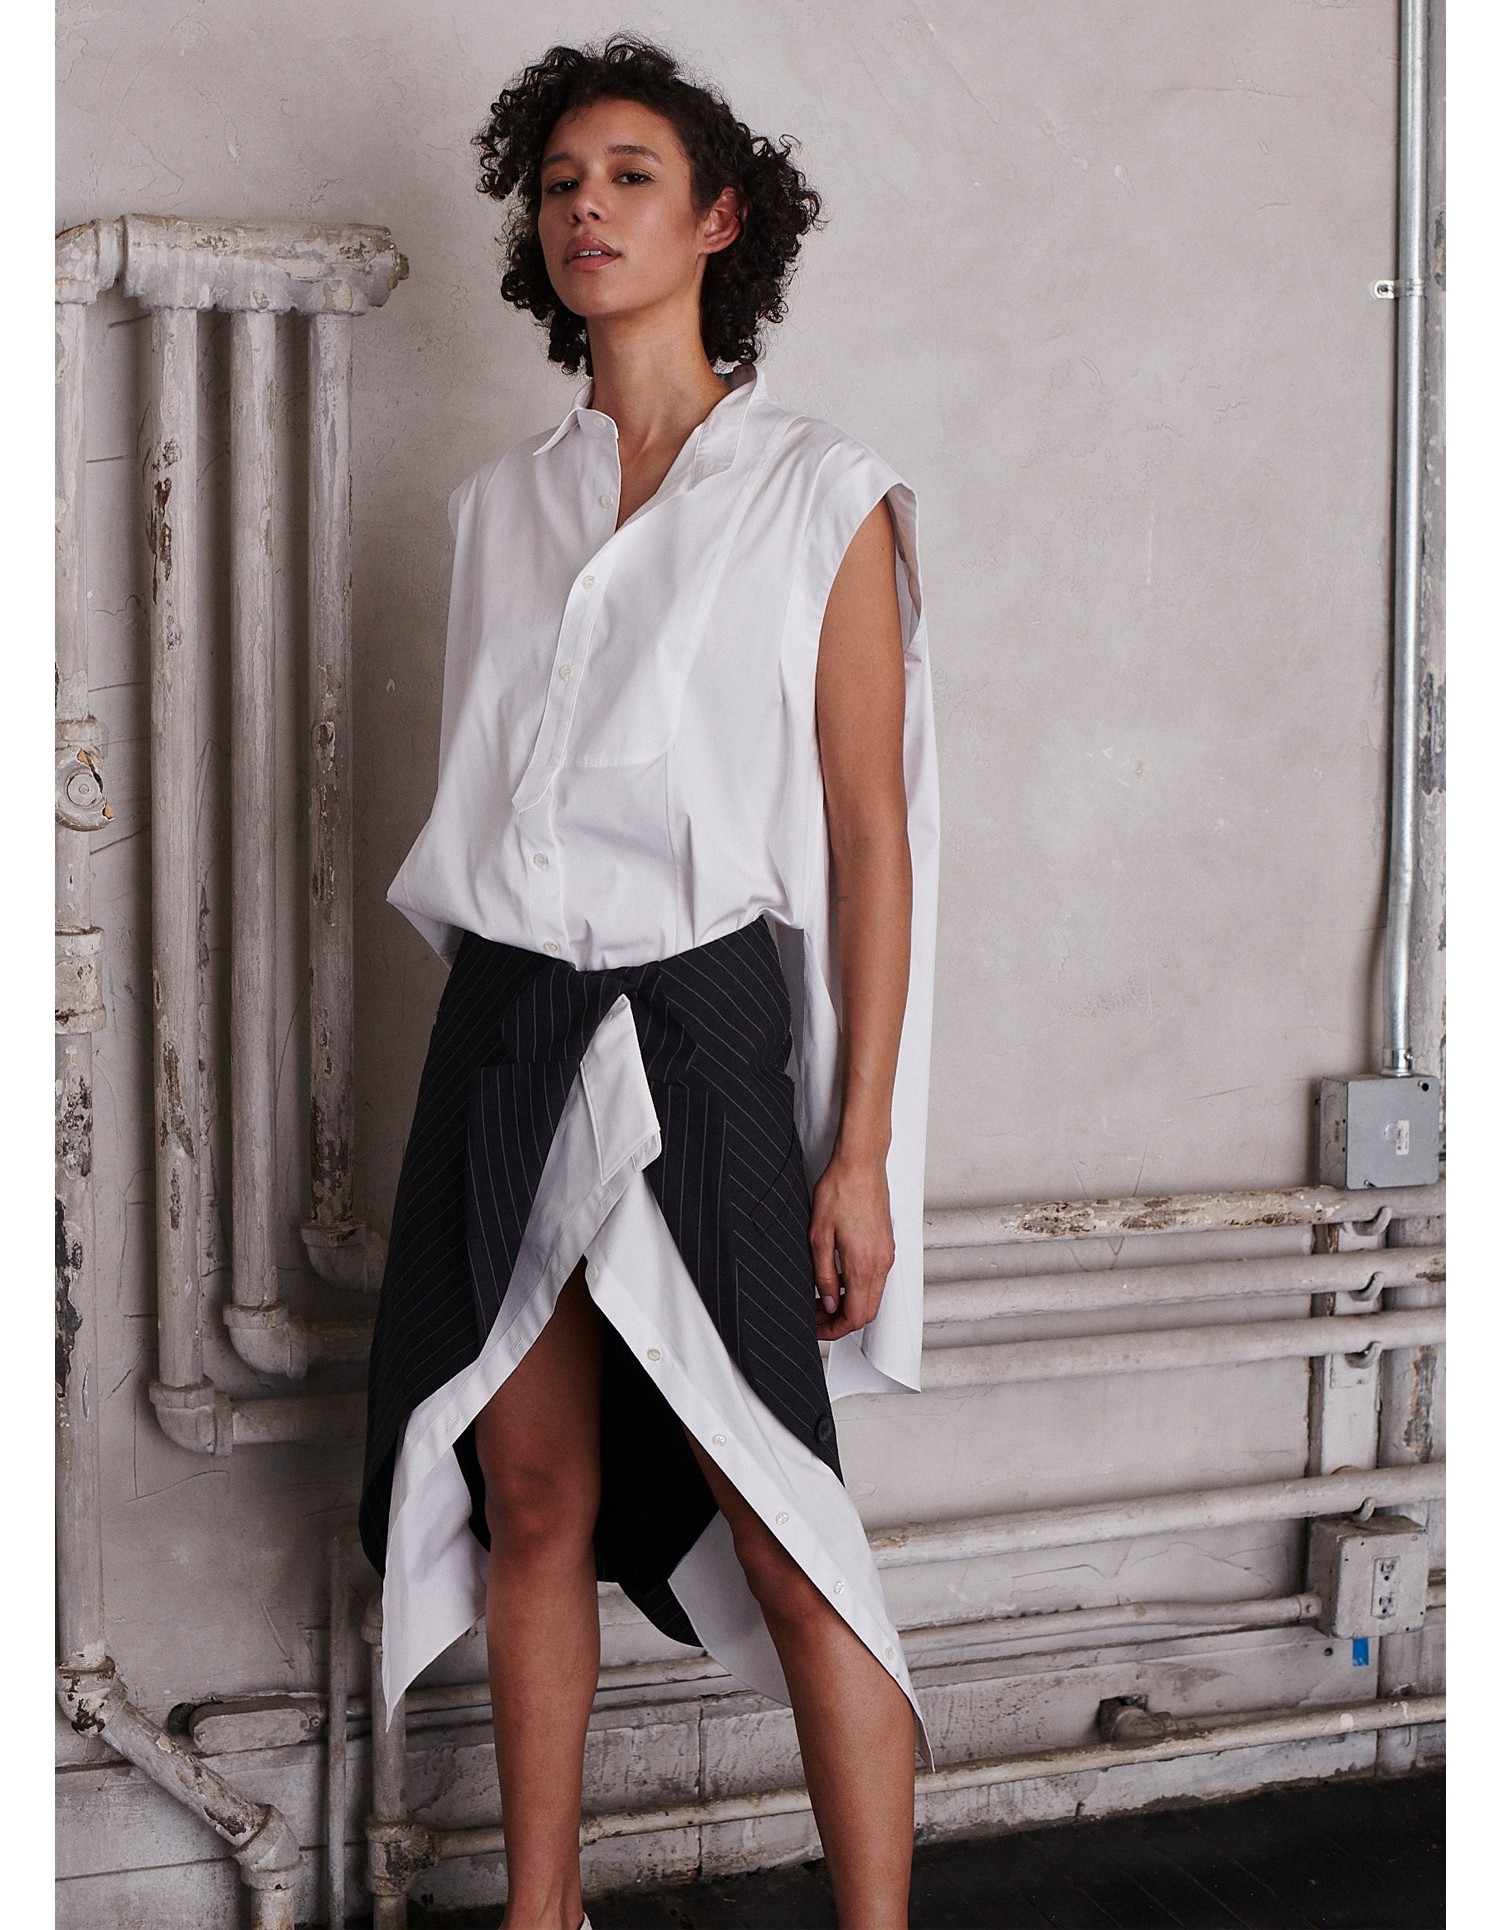 MONSE Deconstructed Jacket and Shirt Skirt on Model Front Detail View